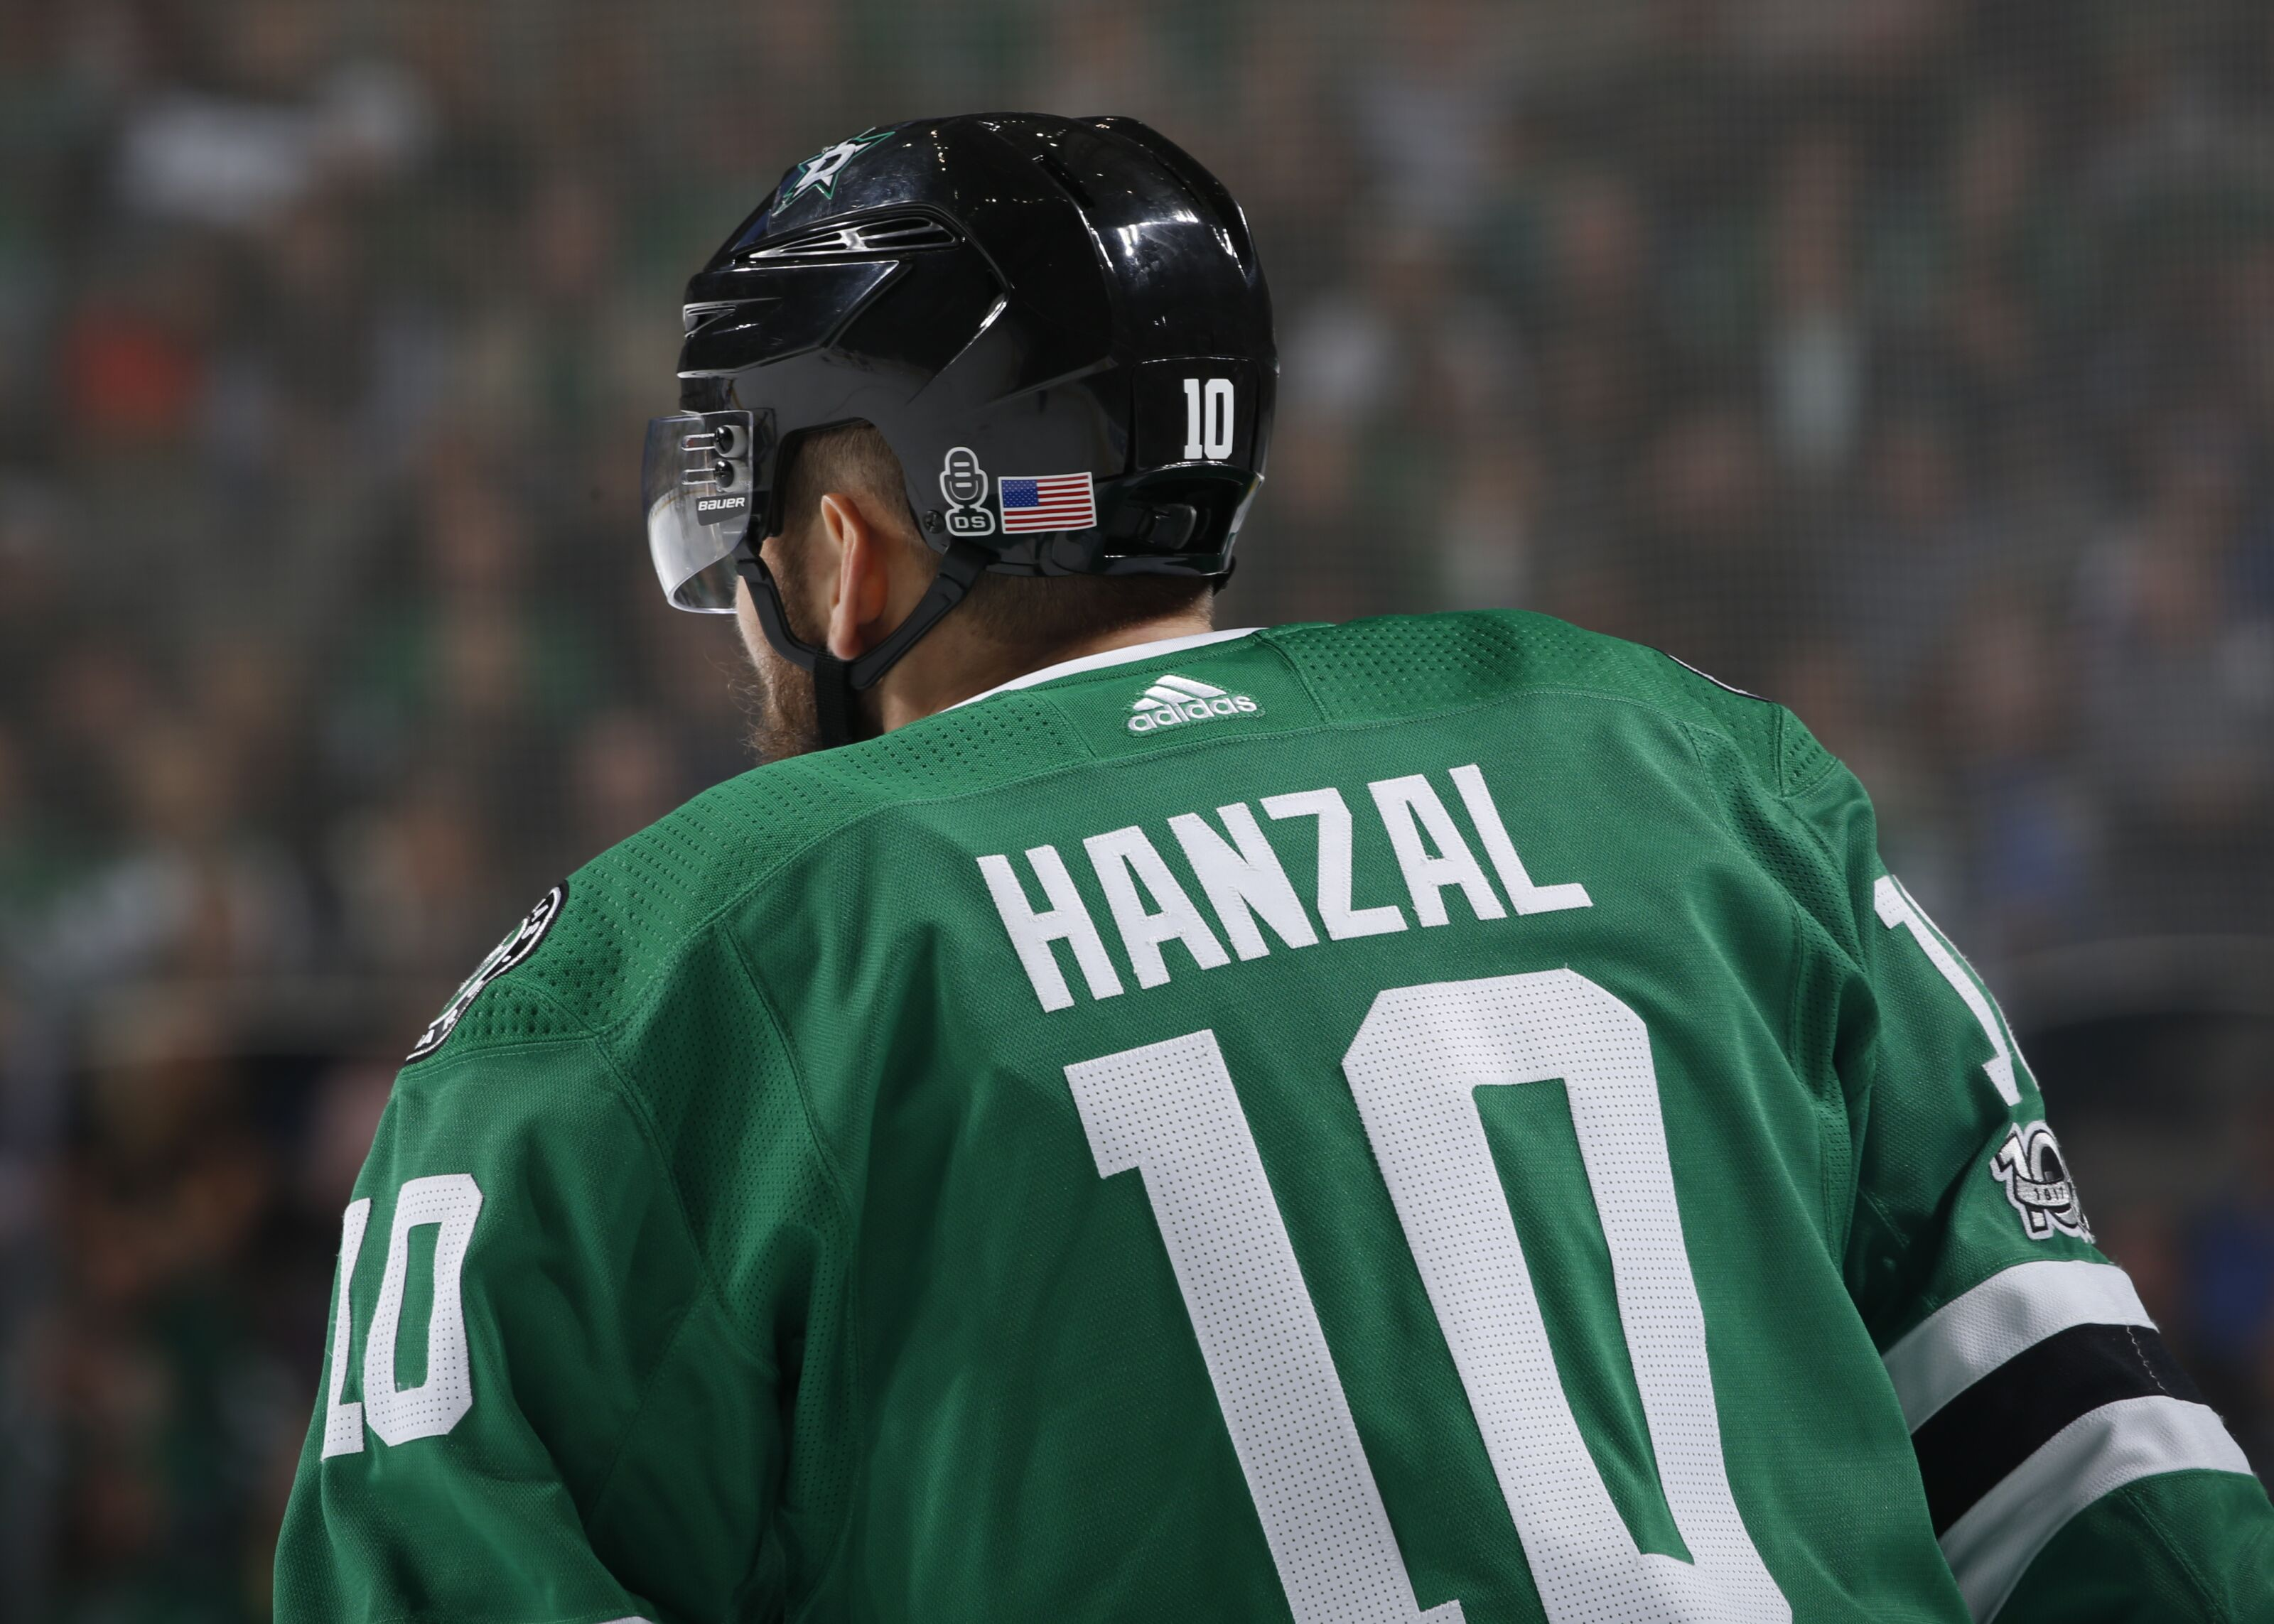 Dallas Stars  What Does Martin Hanzal s Number Change Mean  fb0a7184b